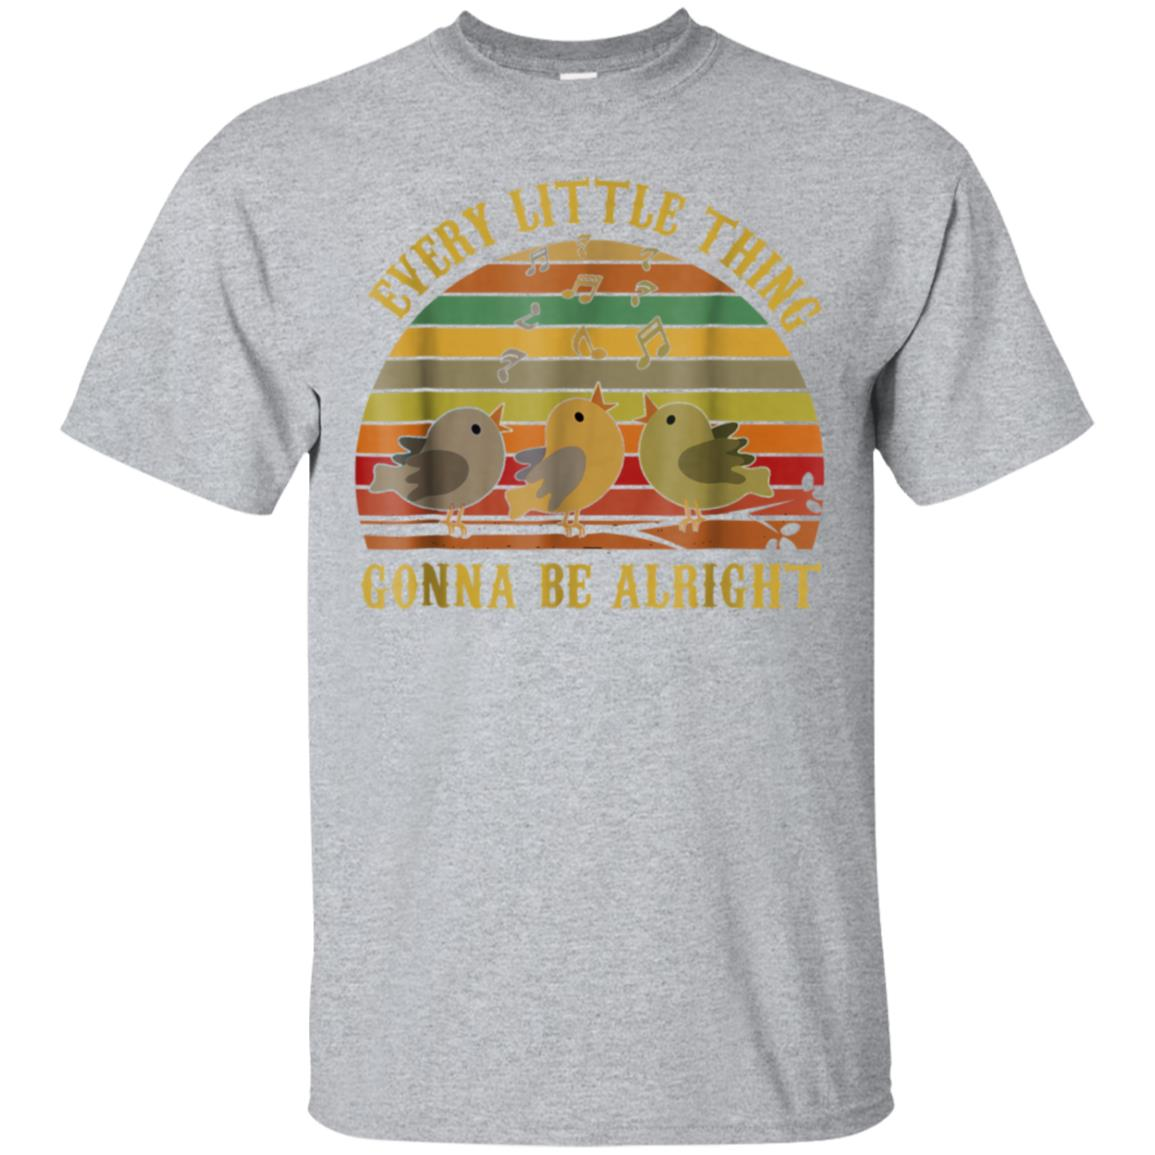 Every Little Thing Gonna Be Alright T shirt 99promocode